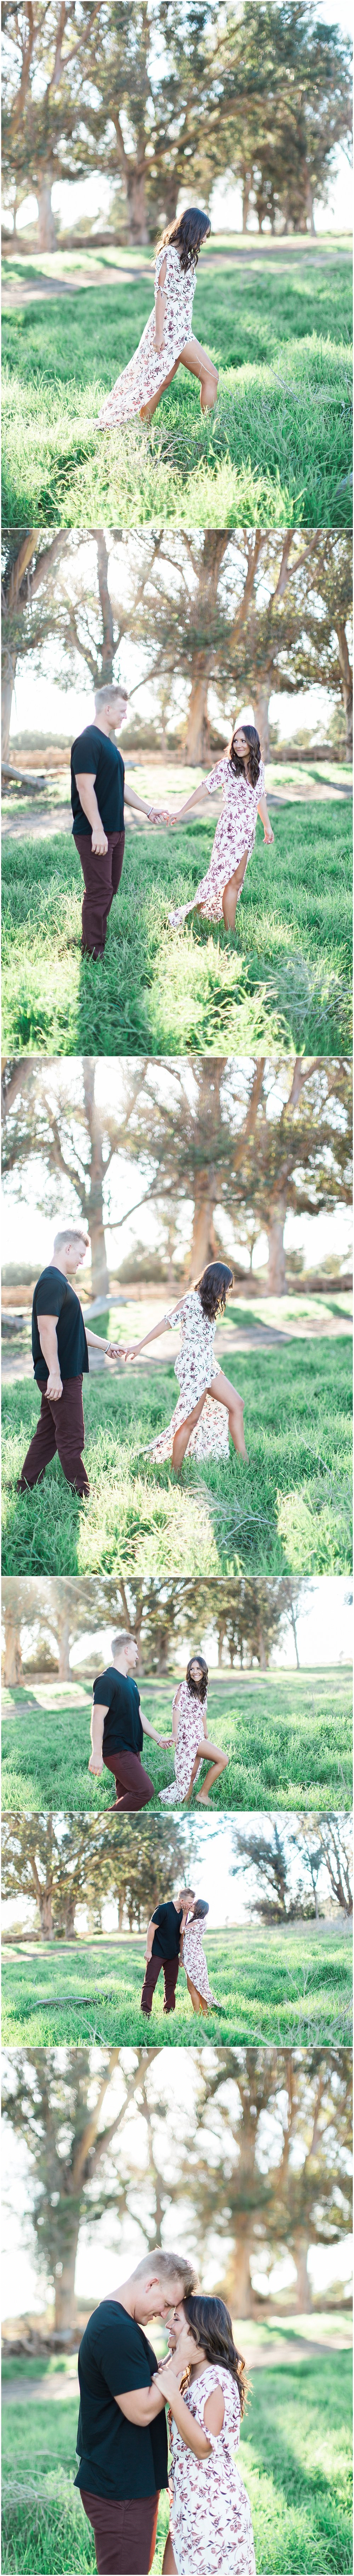 Ashley Burns Photography | Lifestyle and Wedding Photographer